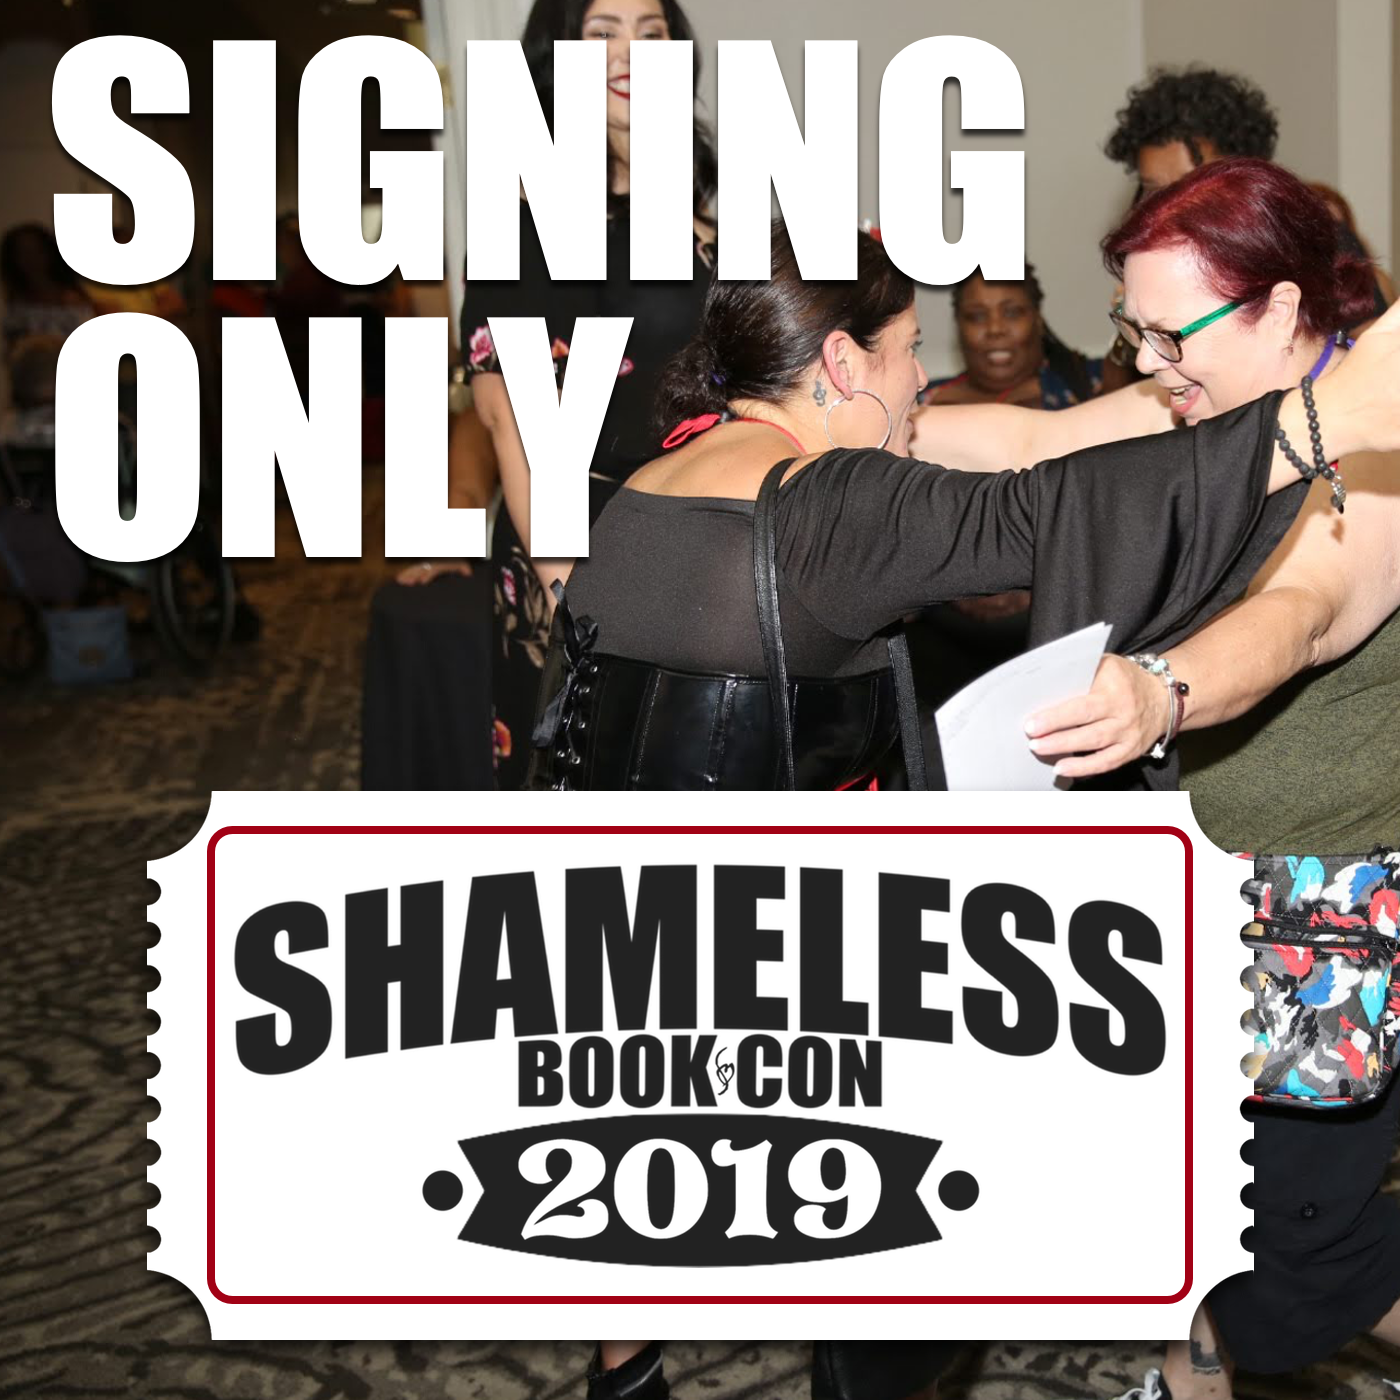 Shameless Book Con Author Signing Event – October 2019 In